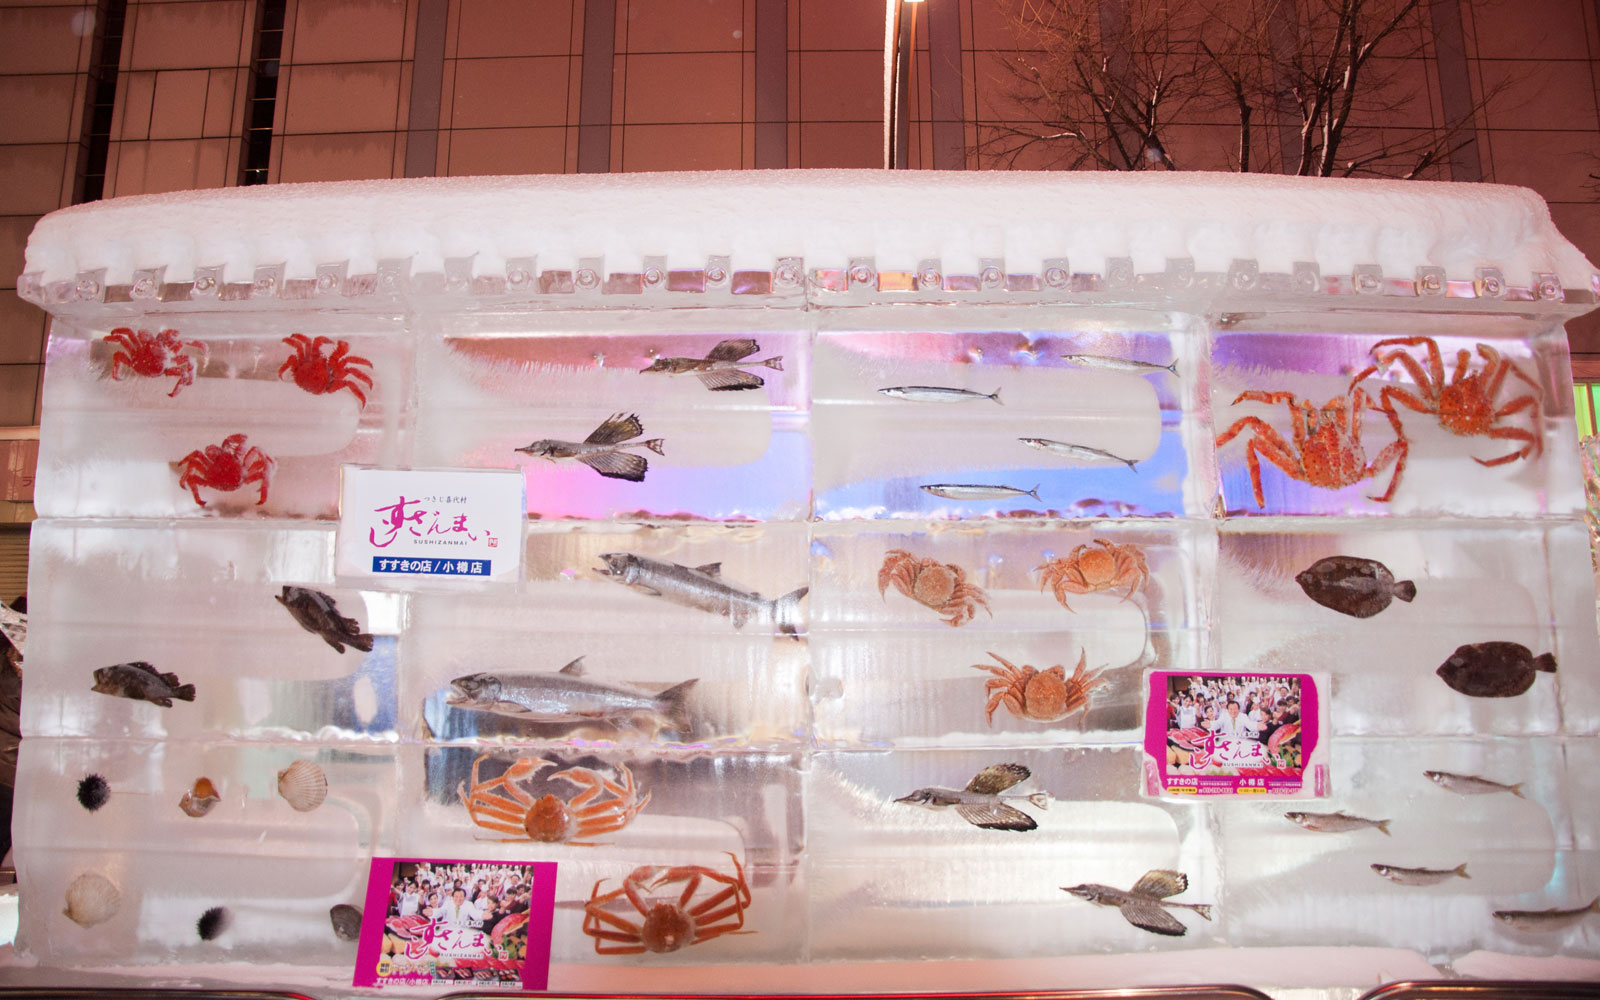 Japanese Festival Uses Real Frozen Fish in New Ice Sculptures Despite Backlash